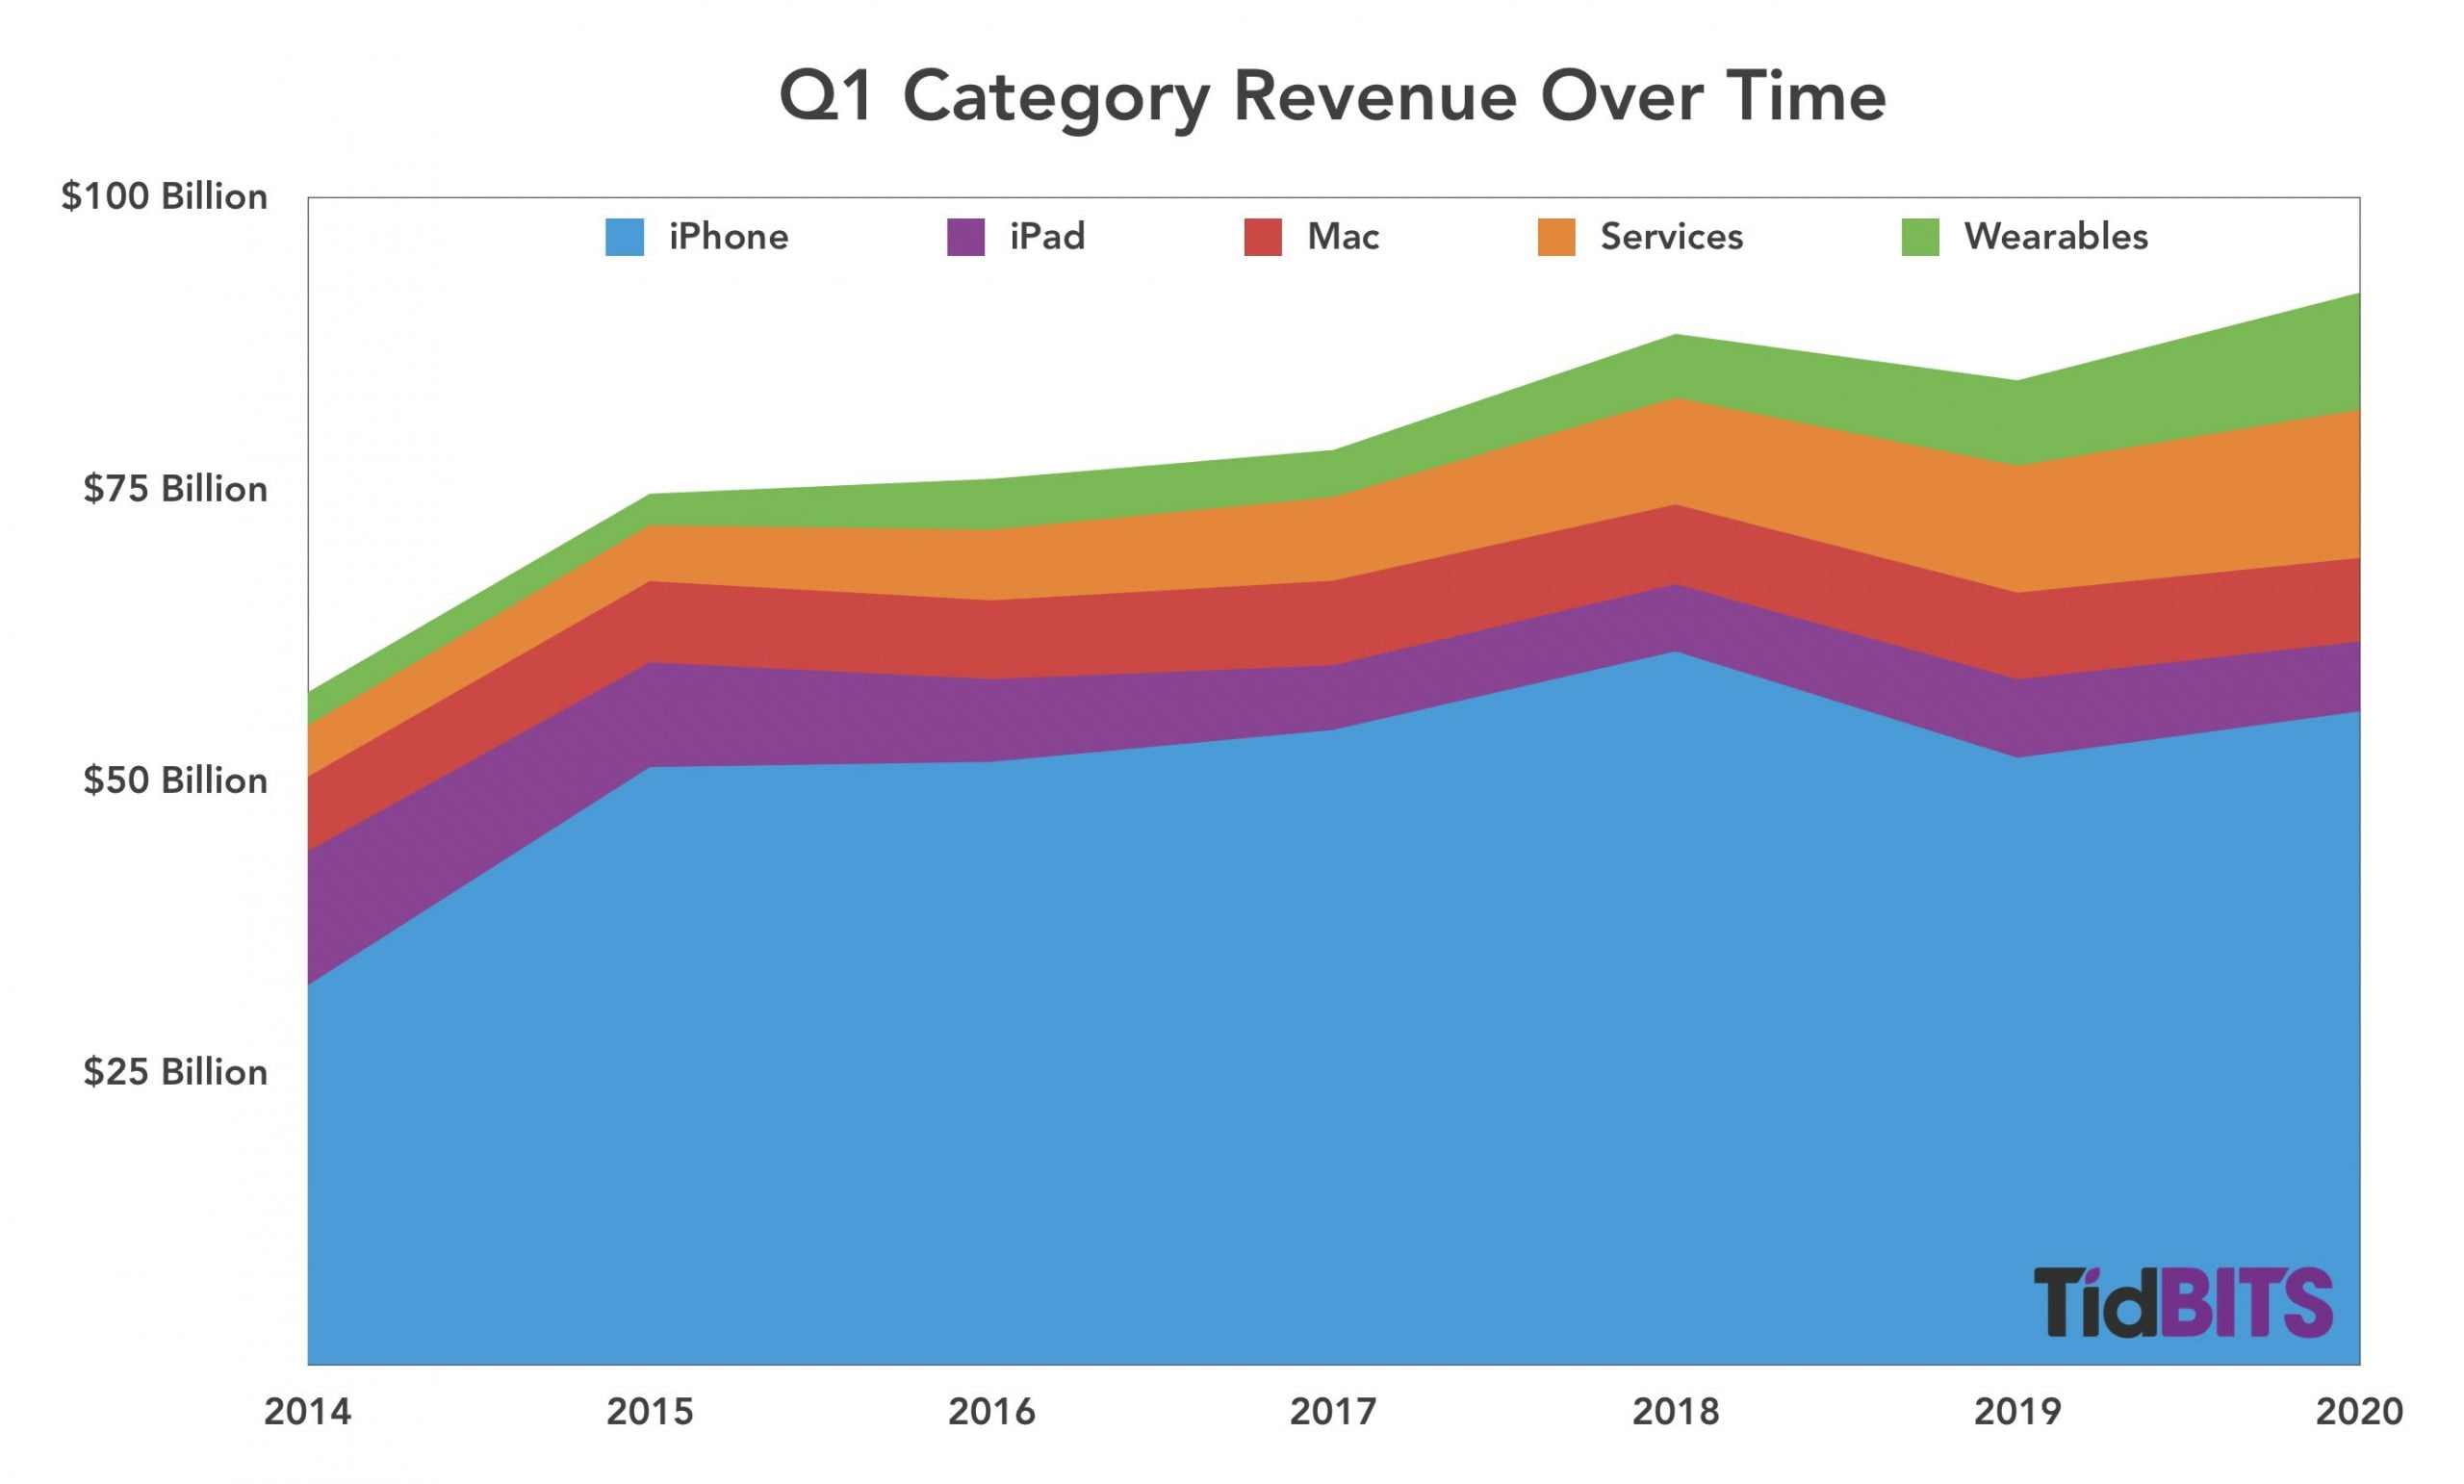 Low iPhone sales in China would cause a bad Q4 2018 for Apple